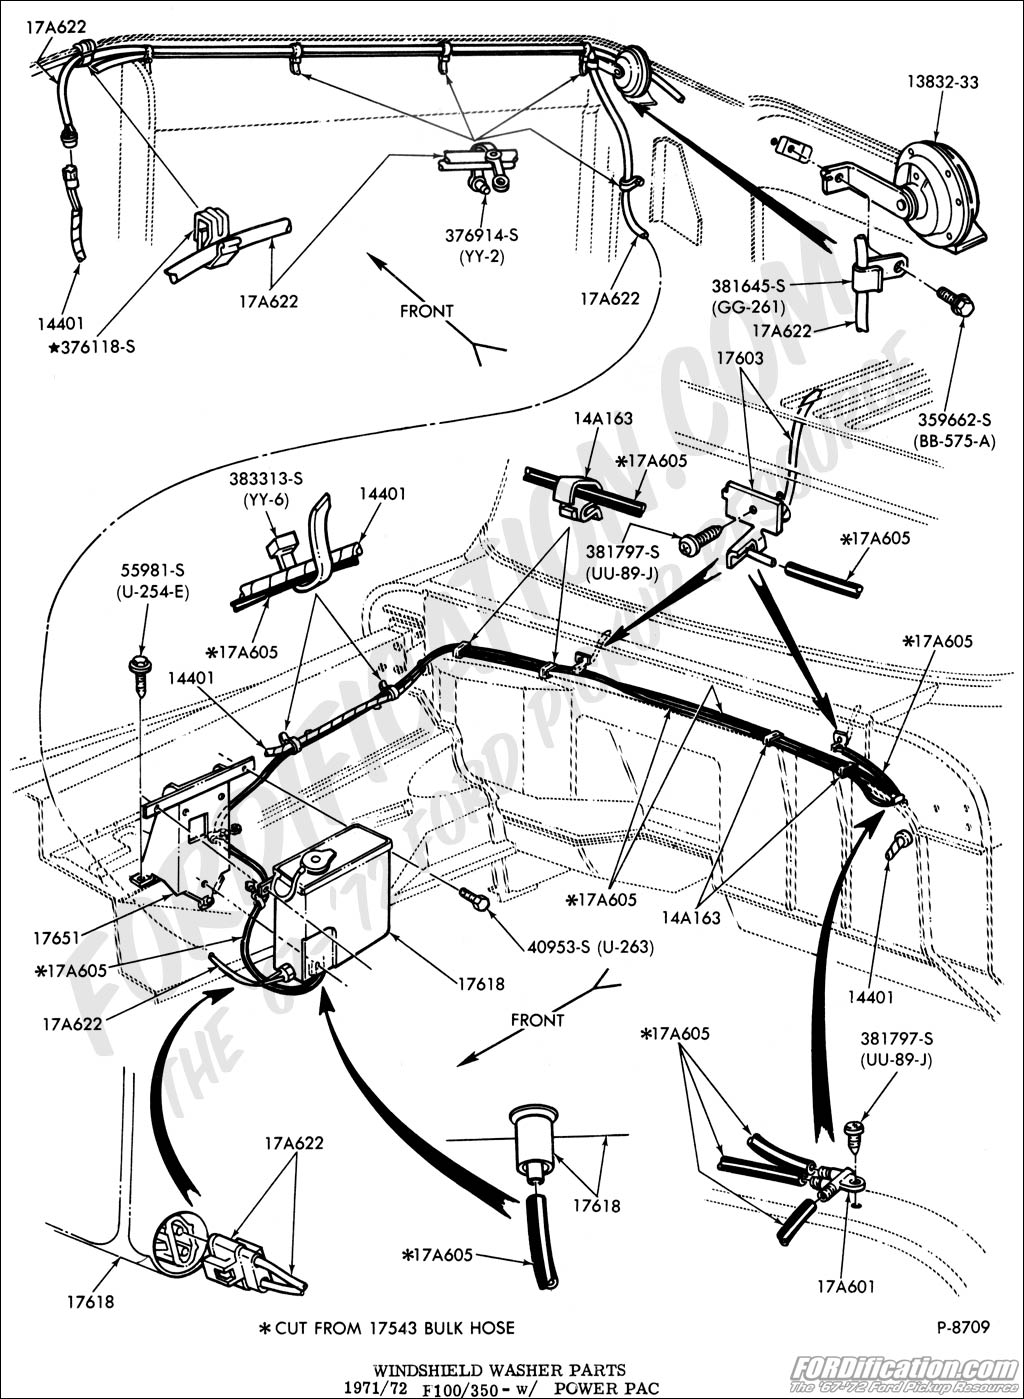 2008 f550 fuse diagram wiring library 2014 Ford E450 Fuse Diagram ford truck technical drawings and schematics section i 2013 ford f550 fuse panel diagram 2014 ford